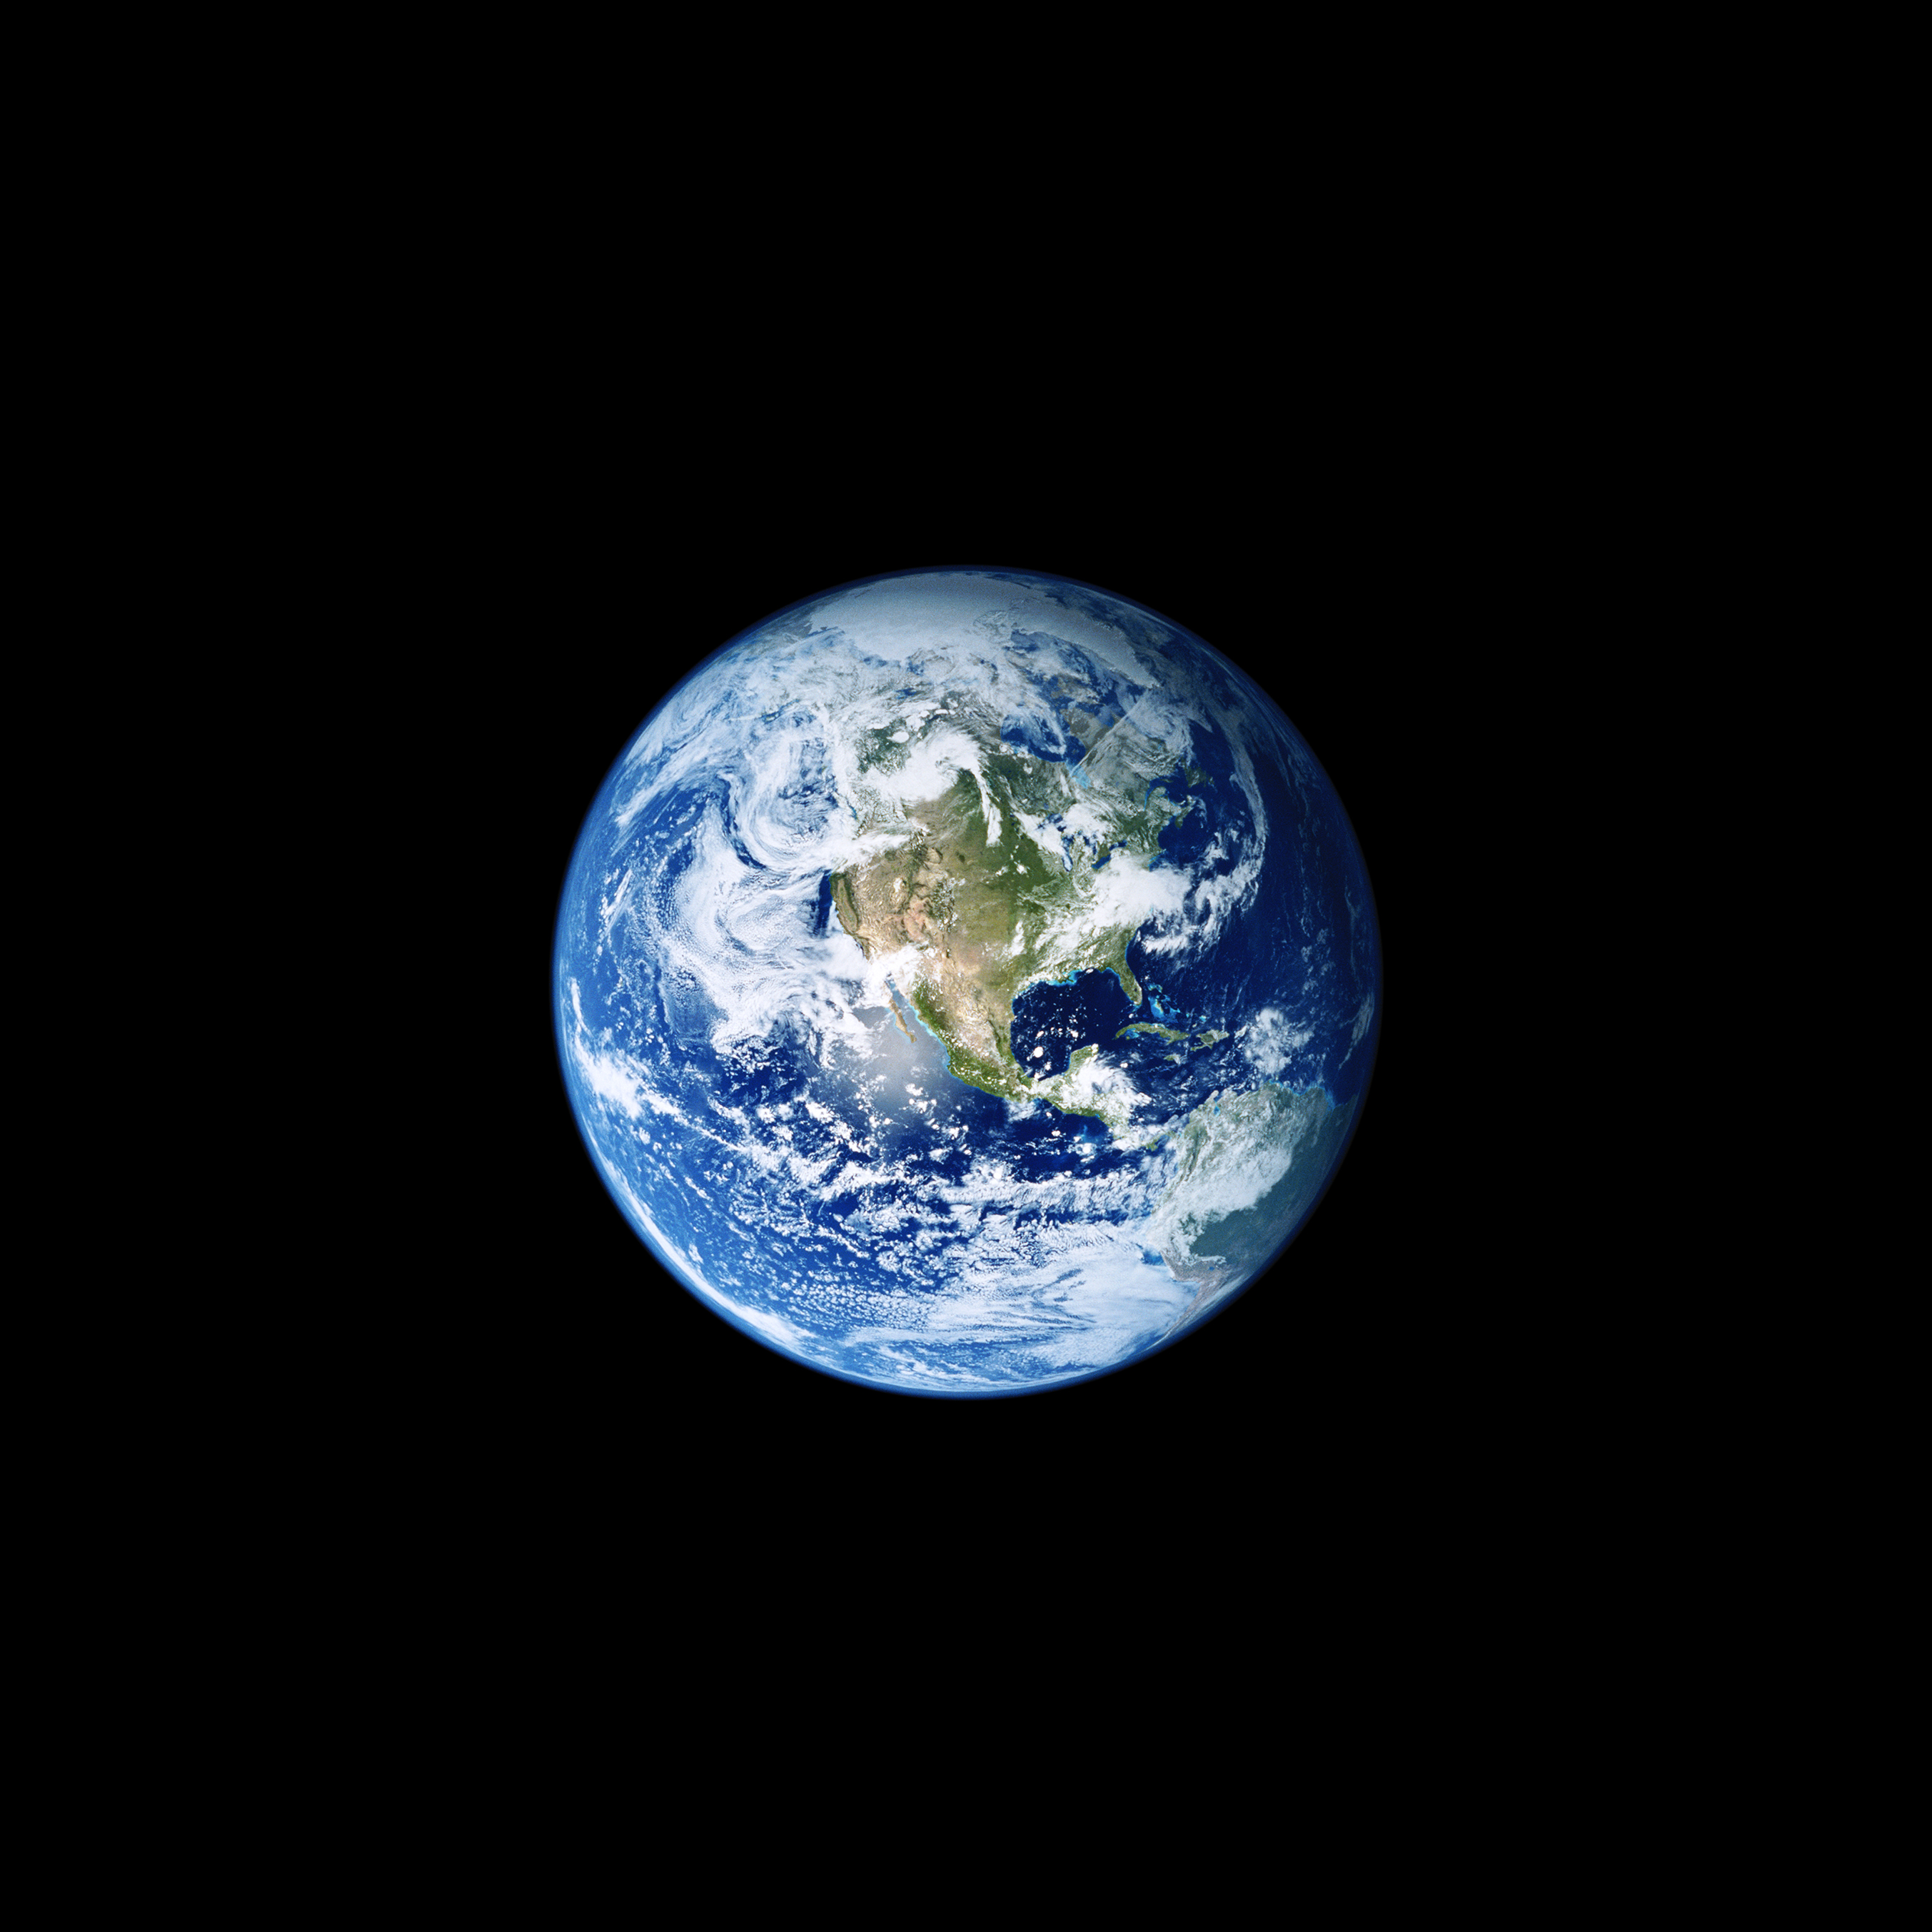 Earth Wallpaper iOS 11 for iPhone